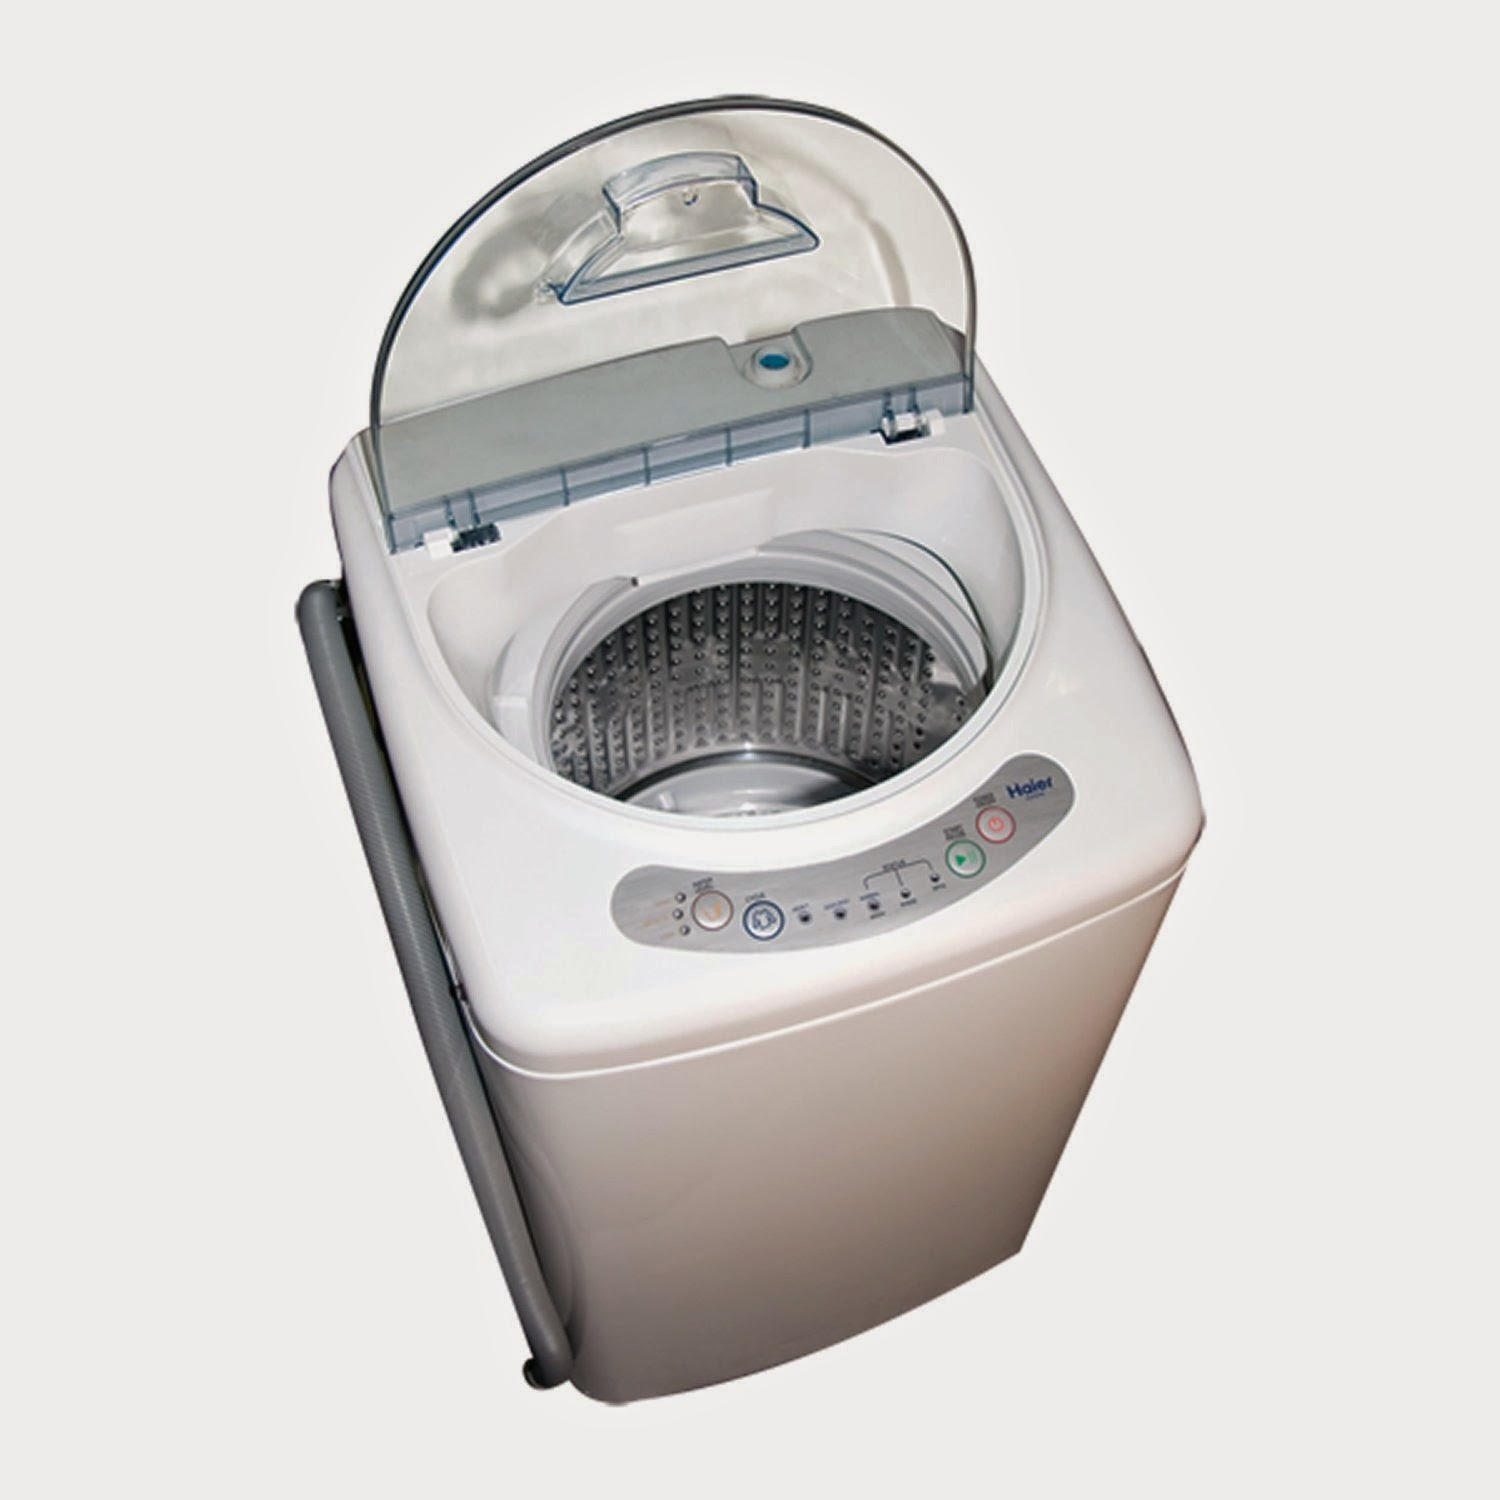 Portable Stackable Washer Dryer